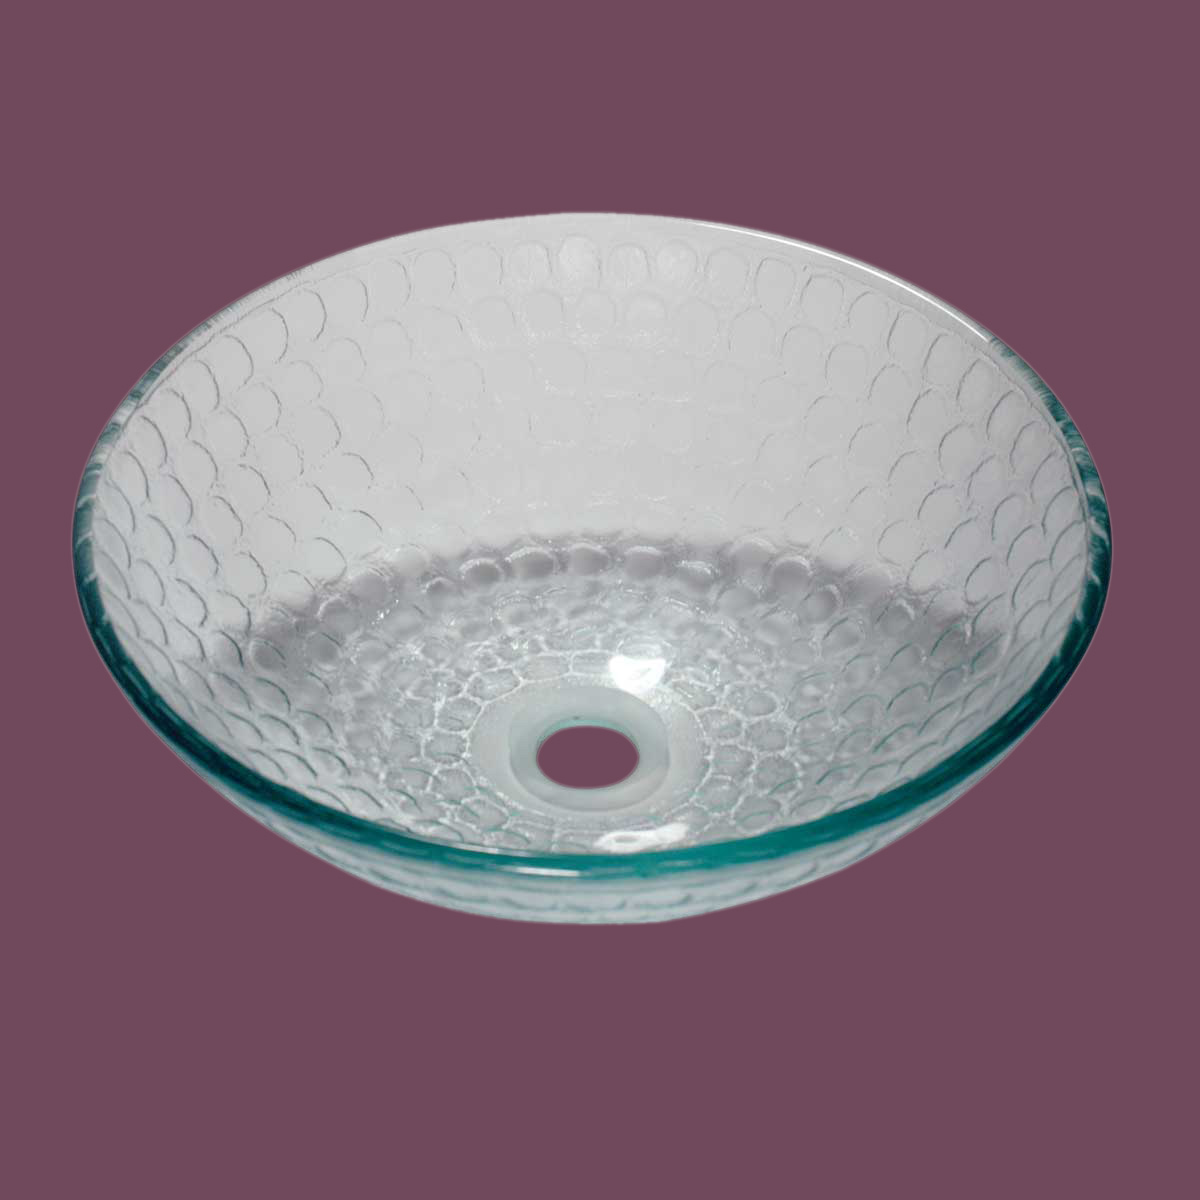 how to clean a glass bowl sink